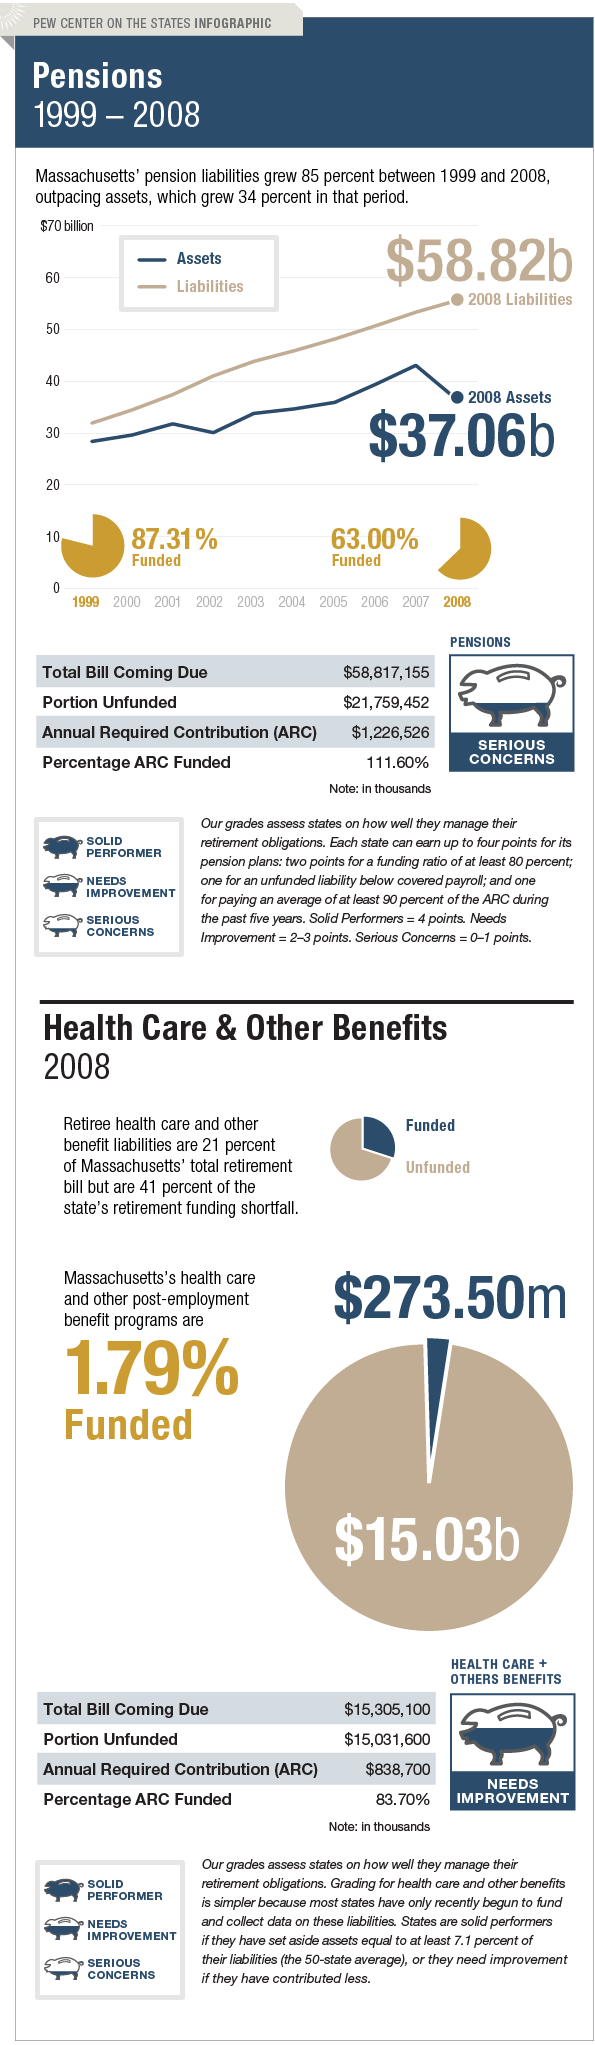 The Trillion Dollar Gap Massachusetts Pension Funding